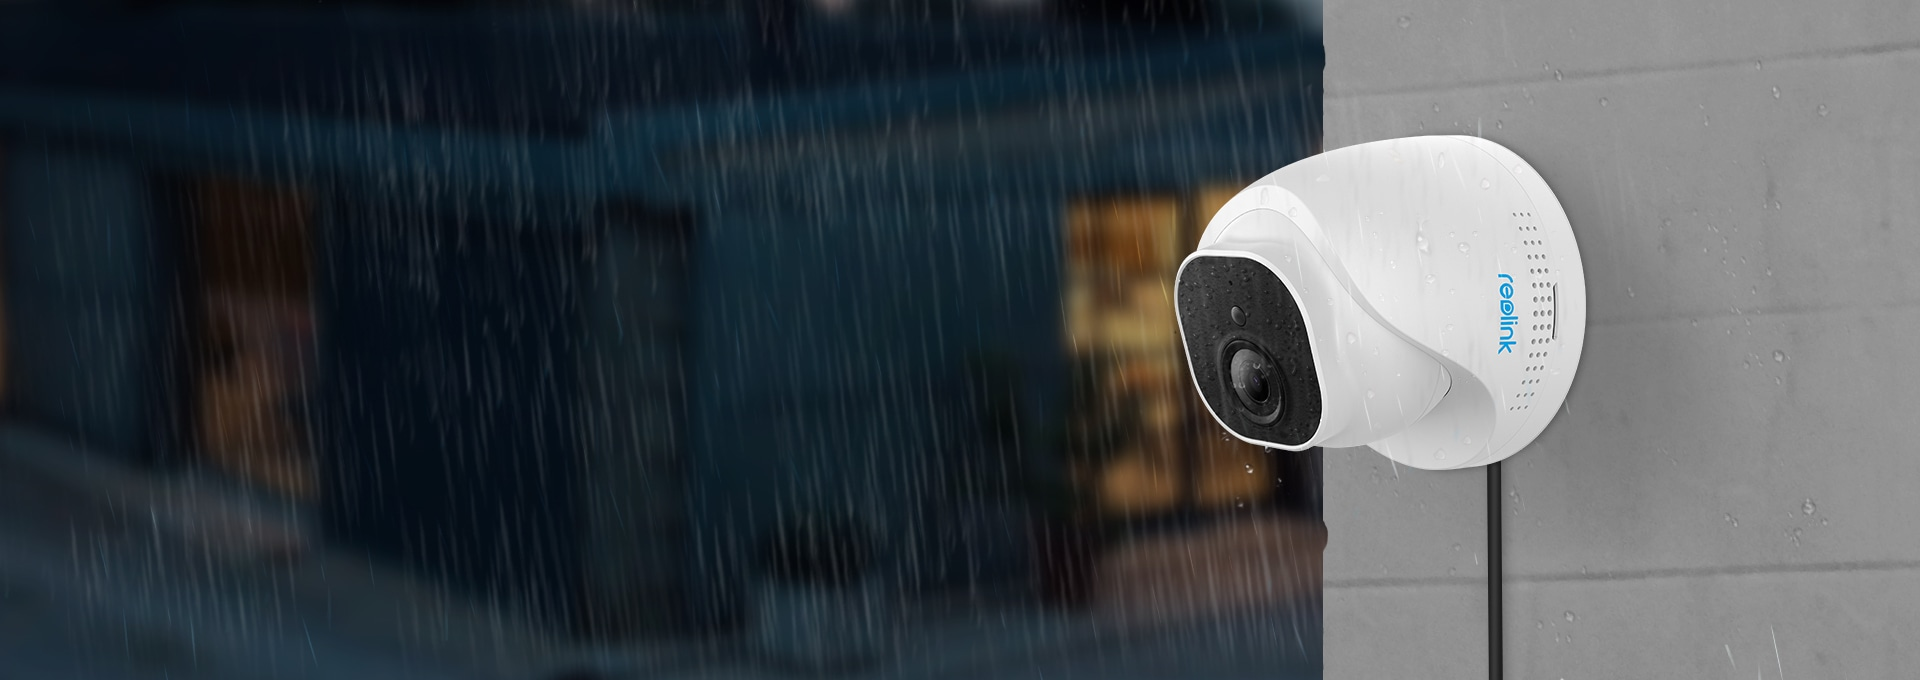 IP66 Waterproof Outdoor Indoor Security Camera System